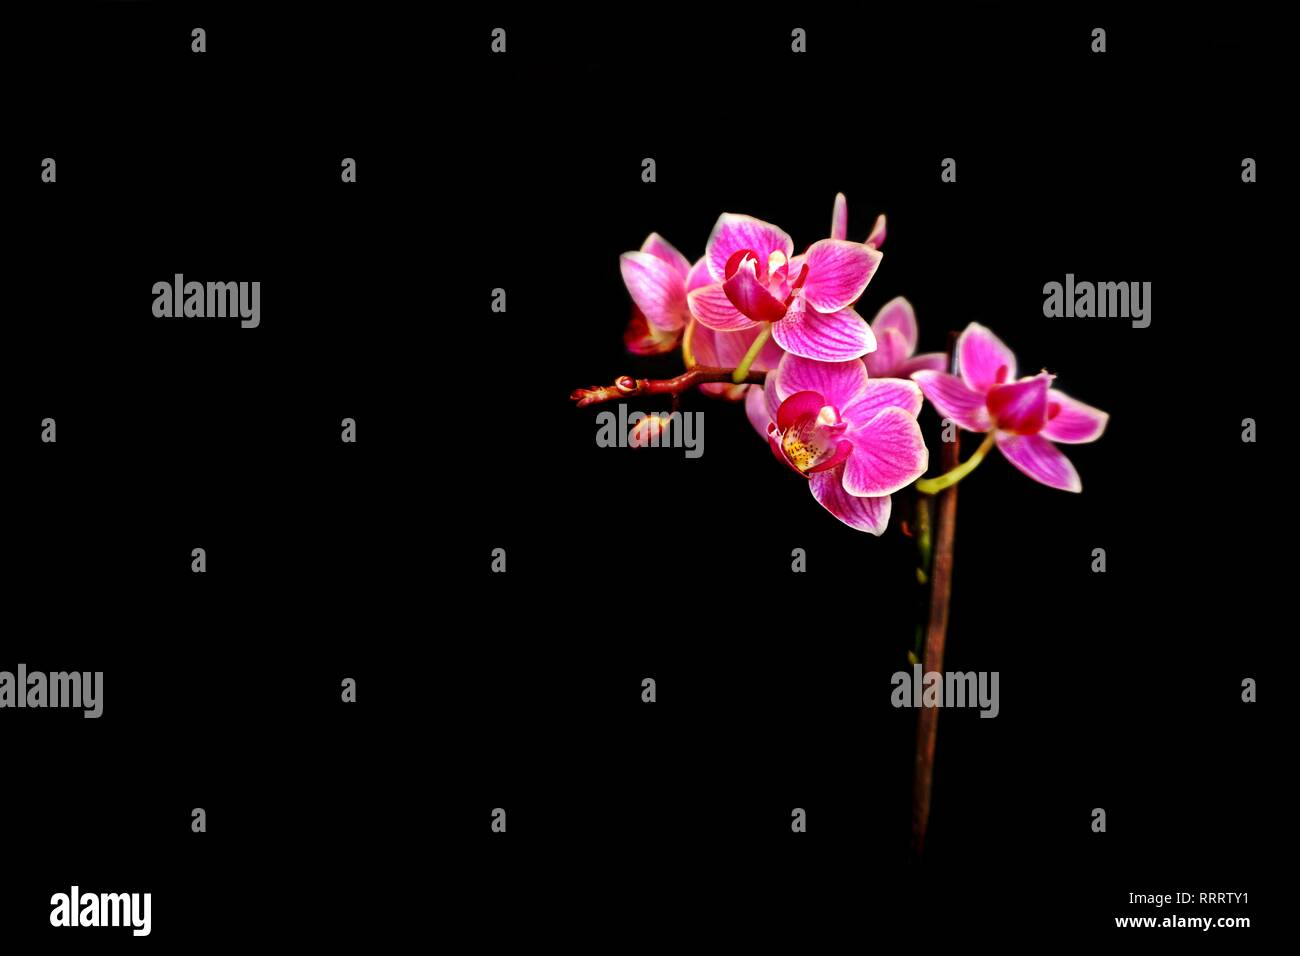 colored orchid against black background - Stock Image